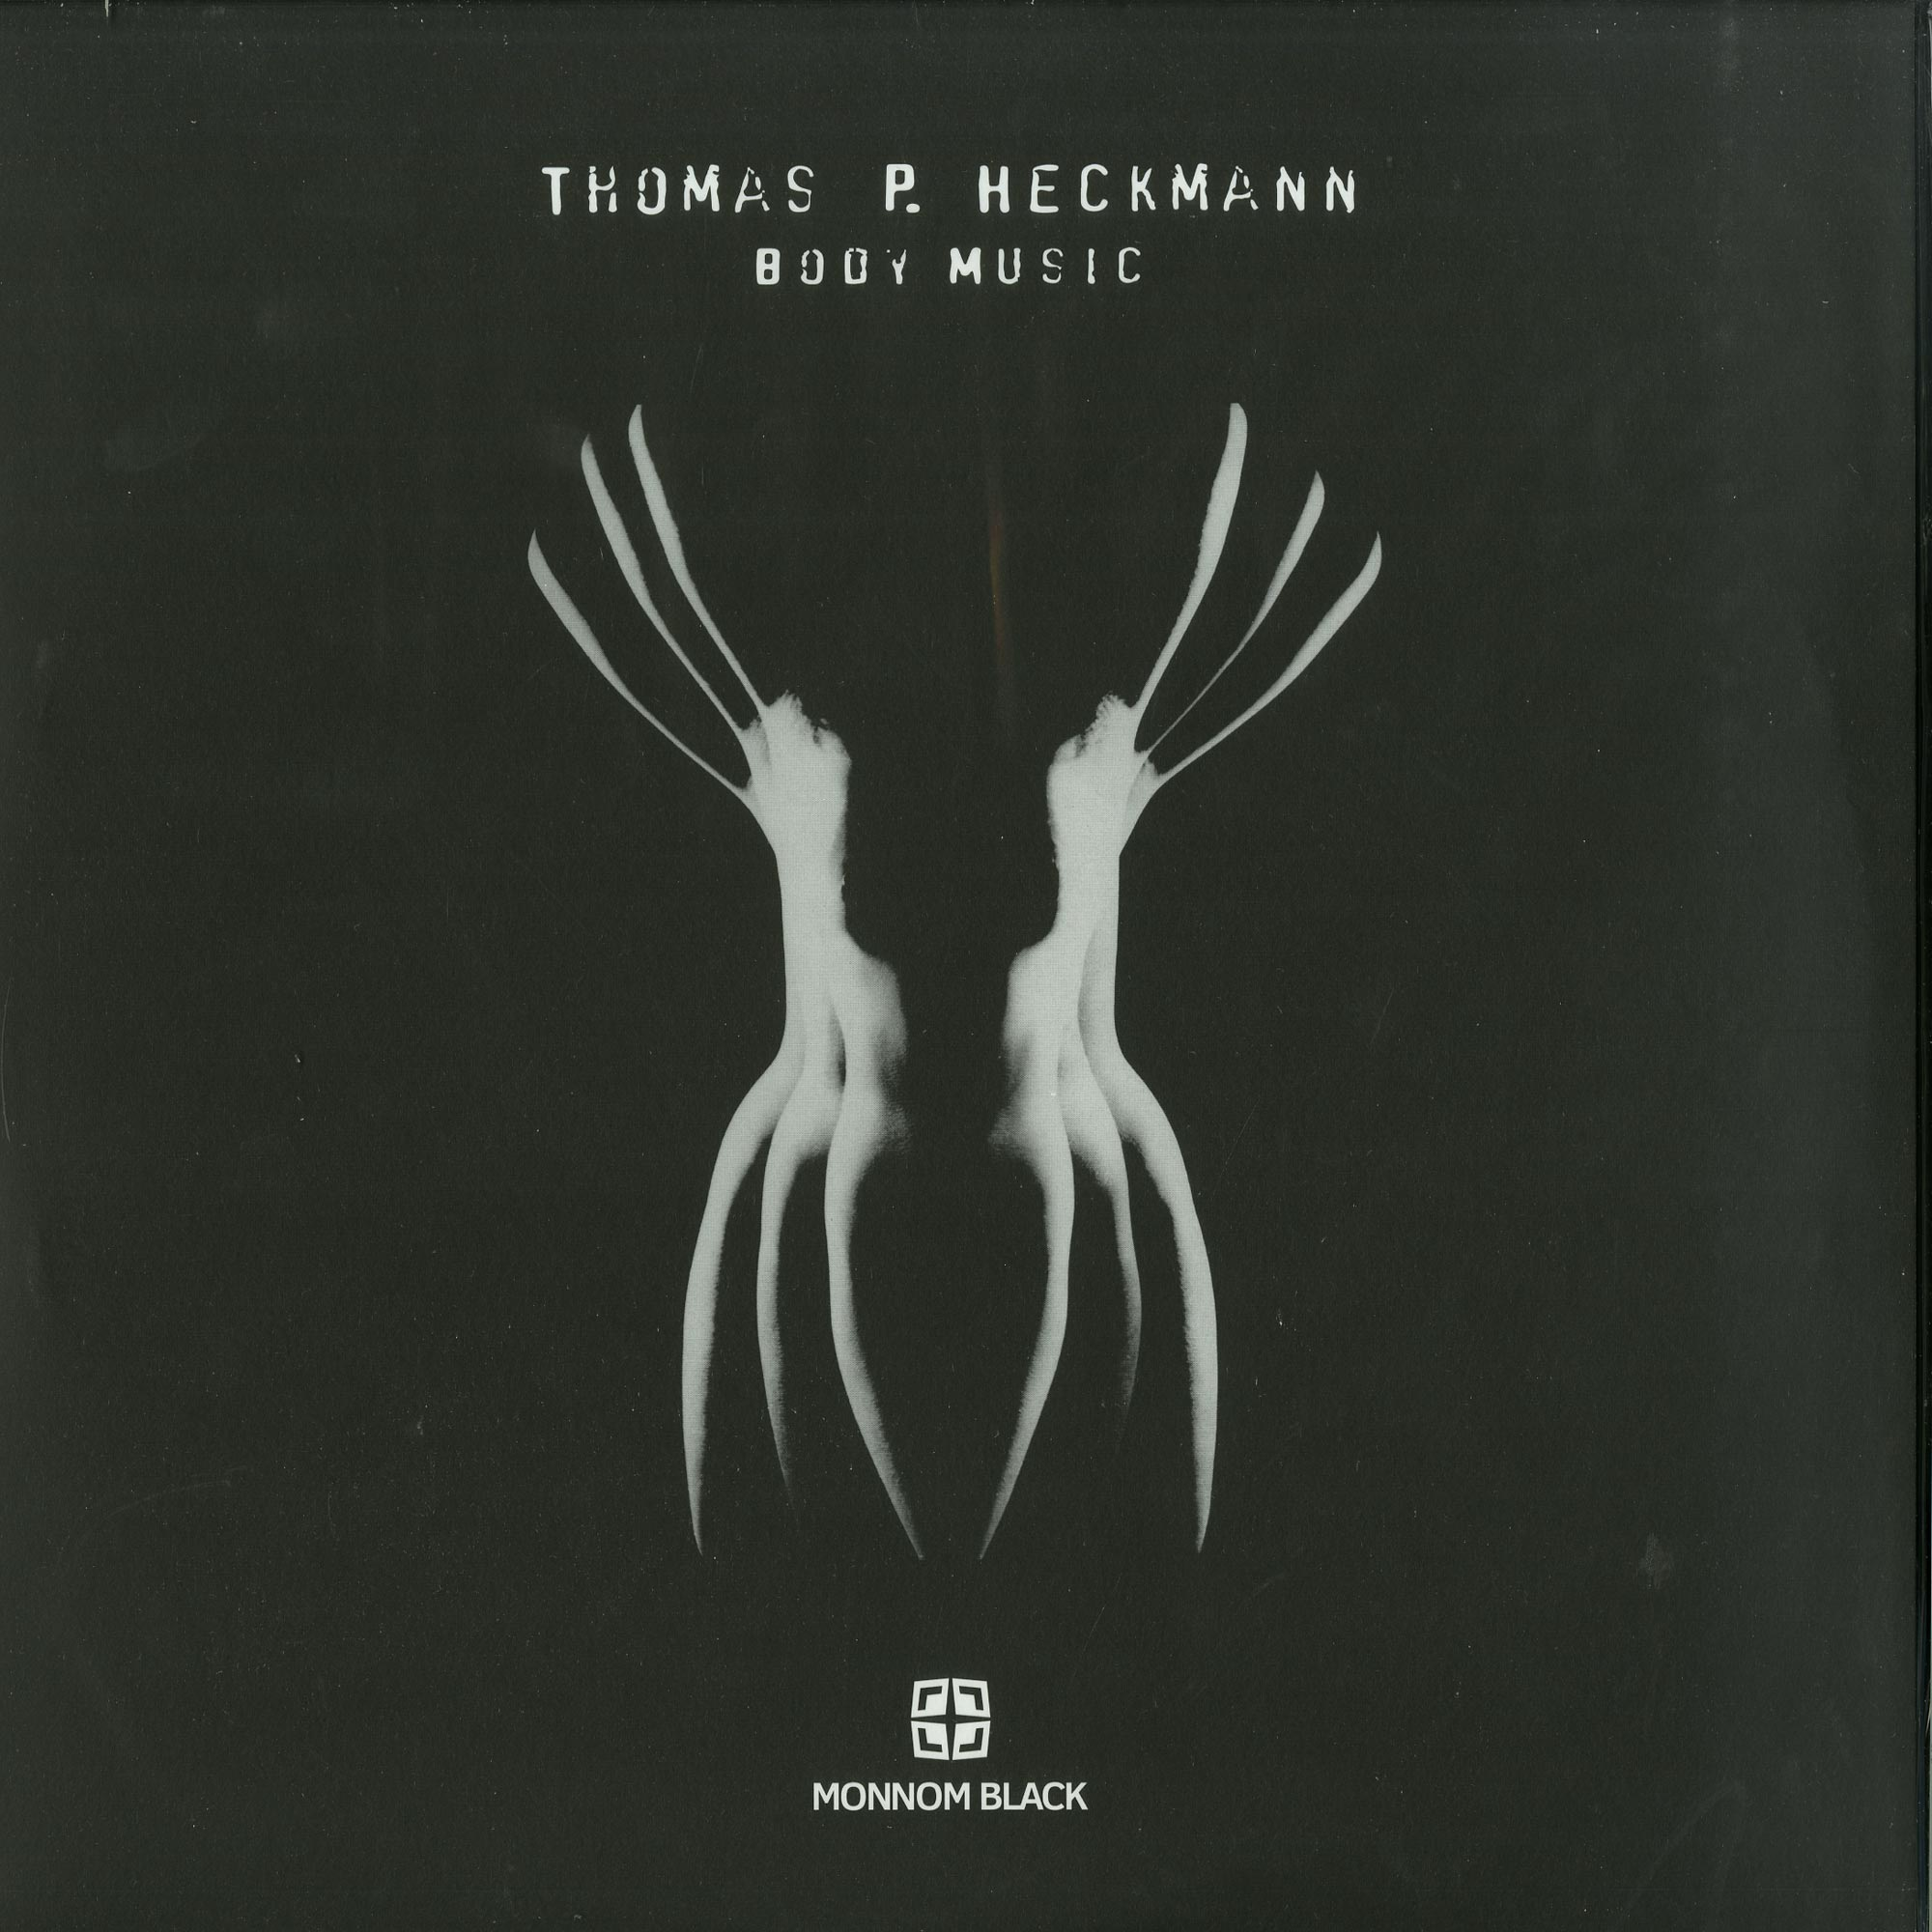 Thomas P. Heckmann - BODY MUSIC